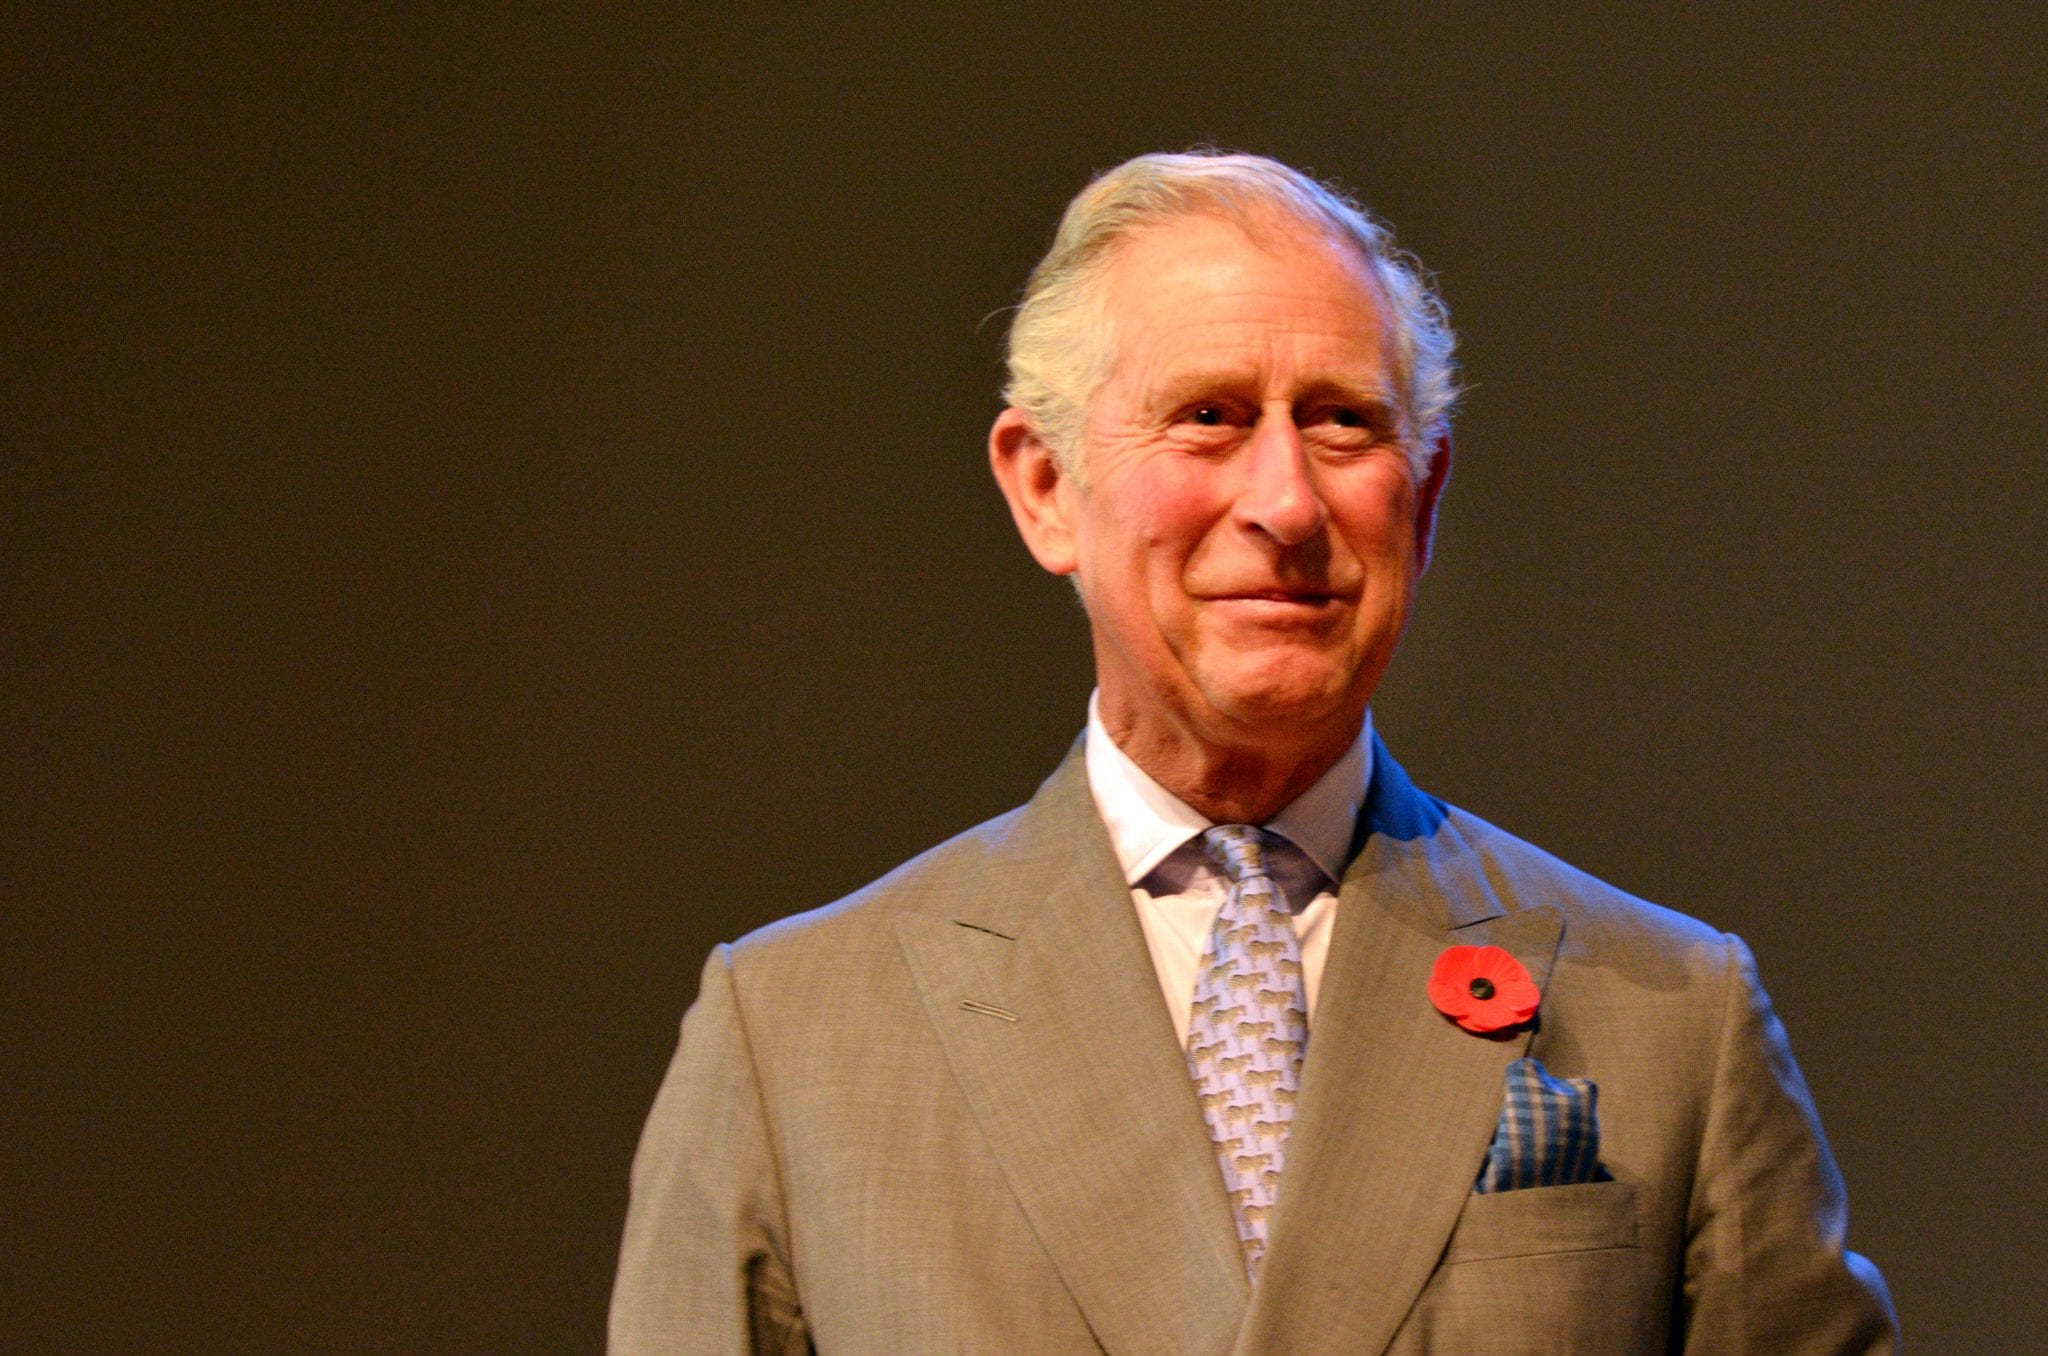 the king Prince Charles is a pussy